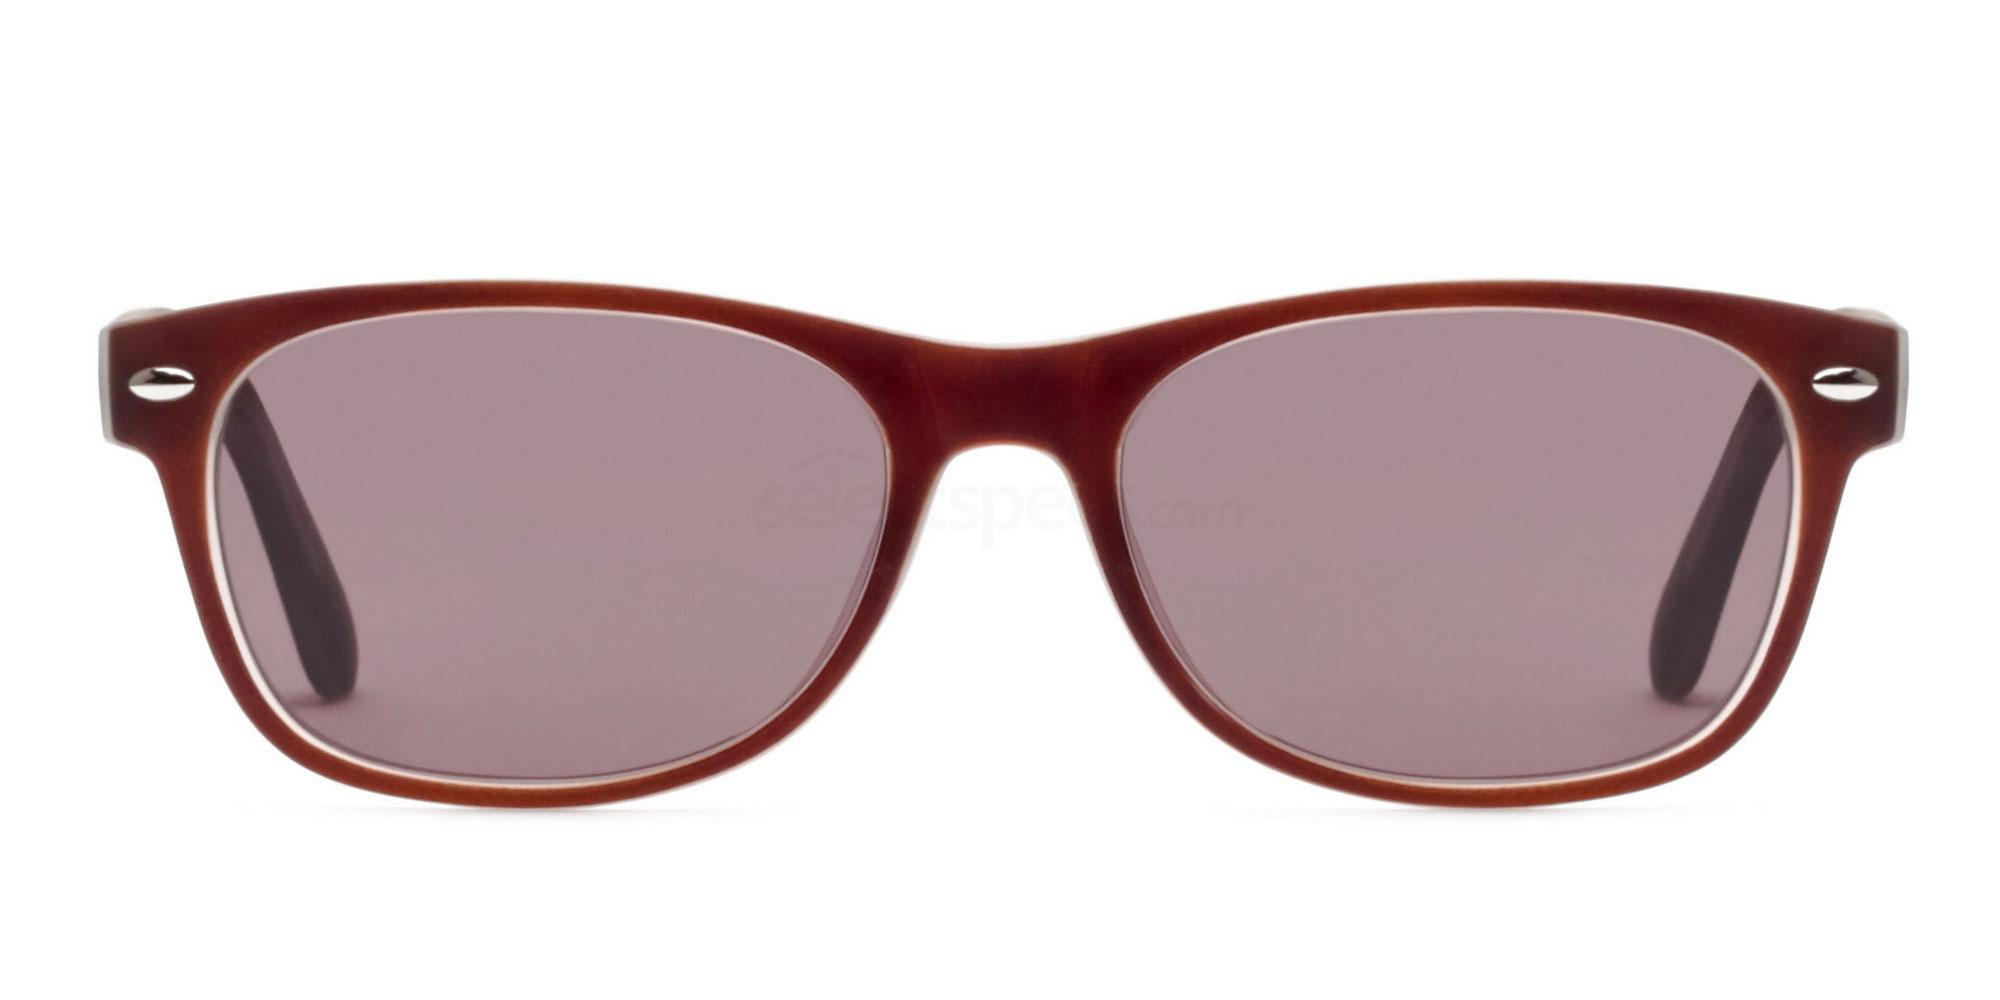 Savannah S8122 - Brown (Sunglasses)